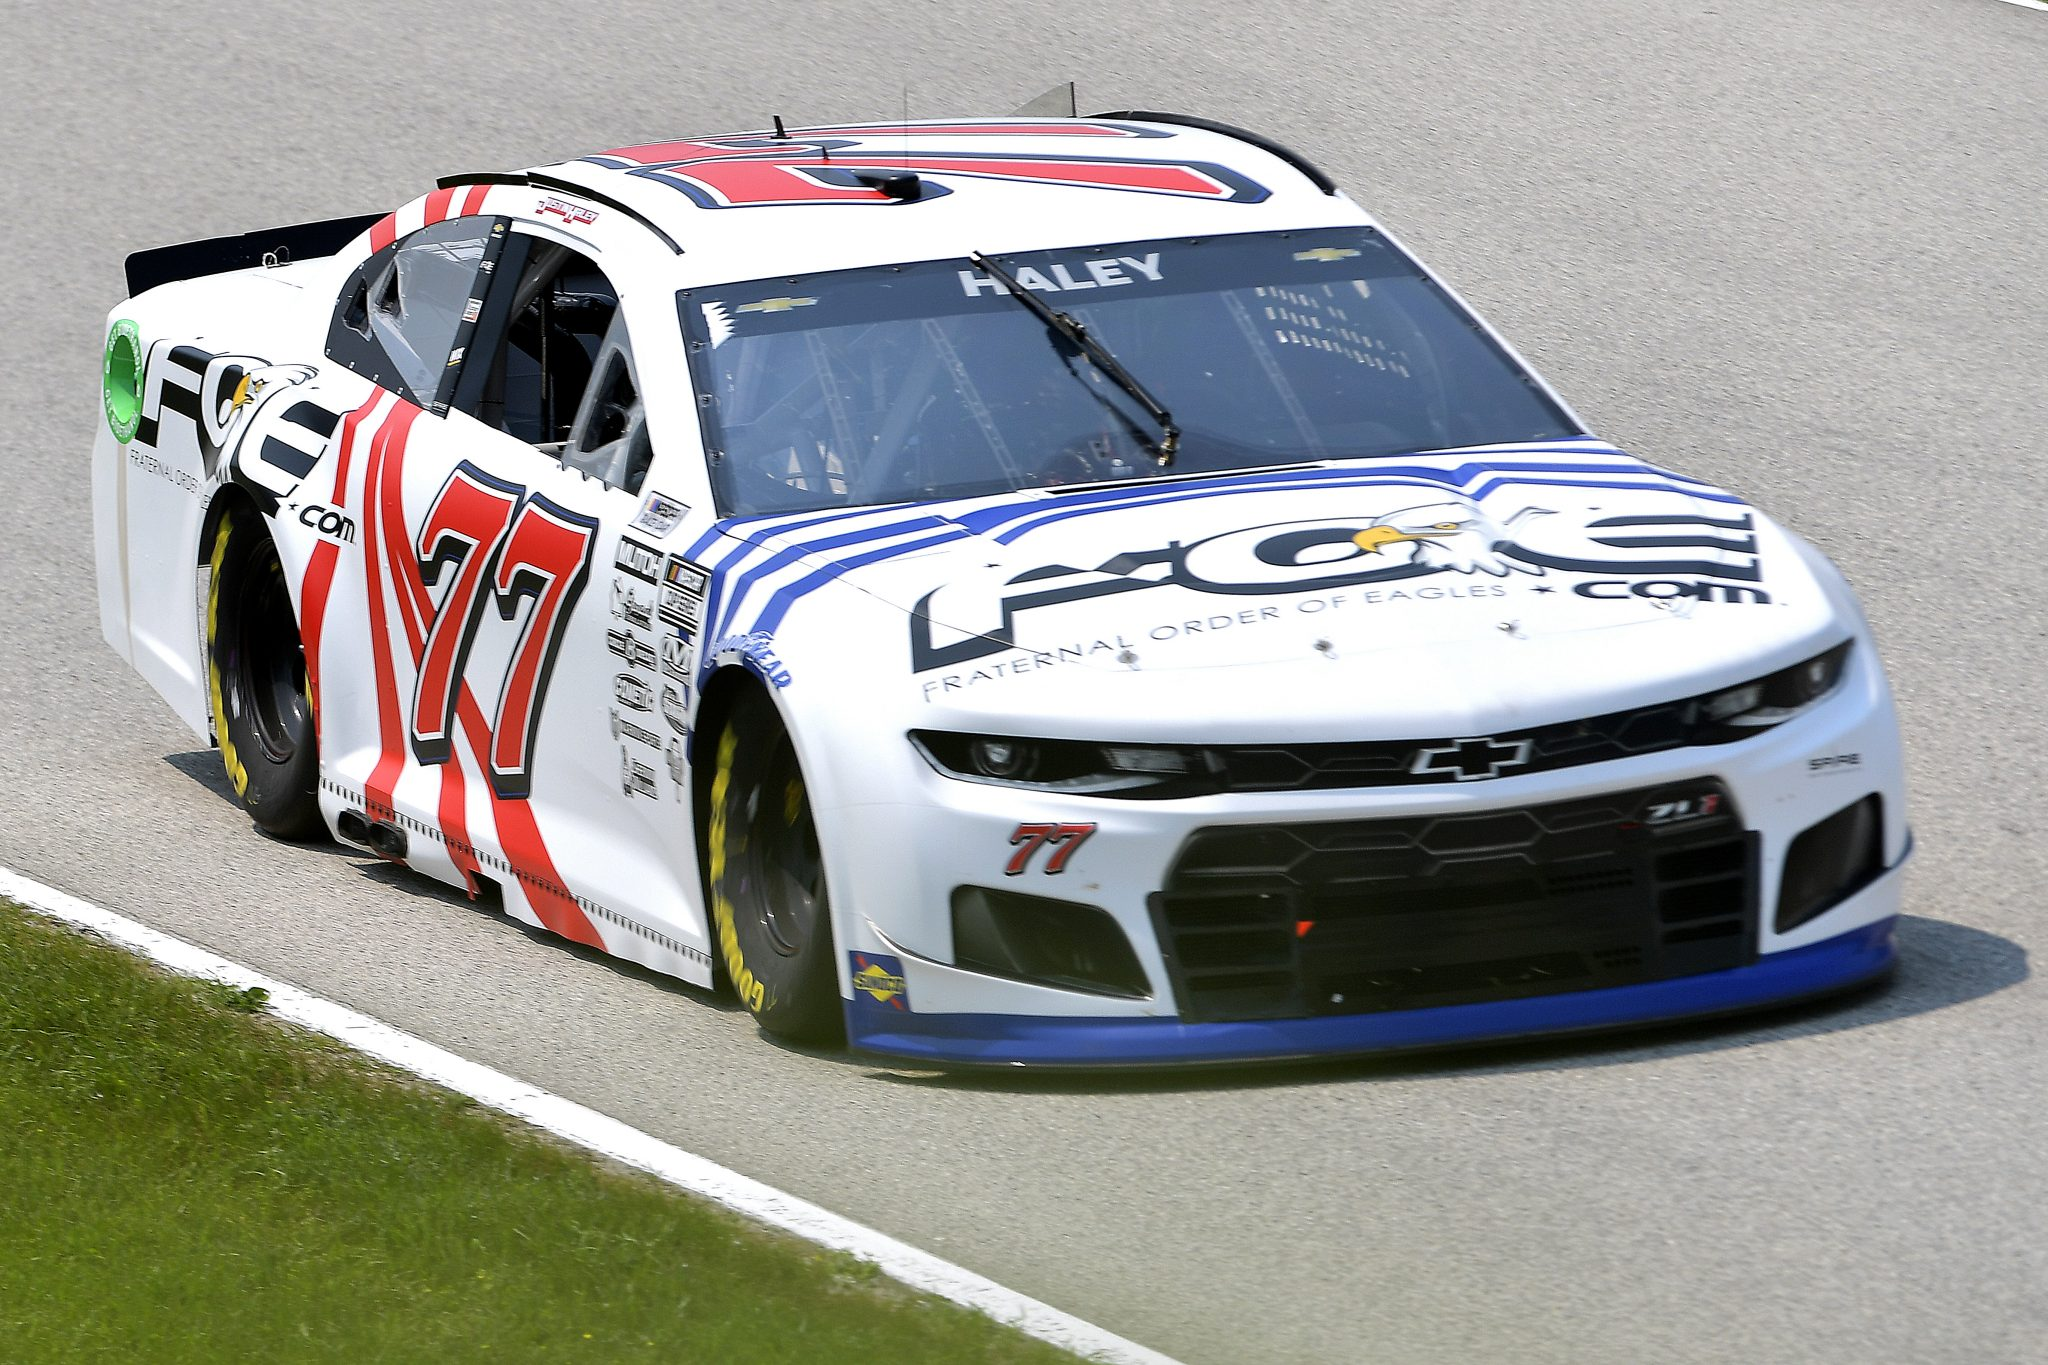 ELKHART LAKE, WISCONSIN - JULY 03: Justin Haley, driver of the #77 Fraternal Order of Eagles Chevrolet, drives during practice for the NASCAR Cup Series Jockey Made in America 250 Presented by Kwik Trip at Road America on July 03, 2021 in Elkhart Lake, Wisconsin. (Photo by Logan Riely/Getty Images) | Getty Images